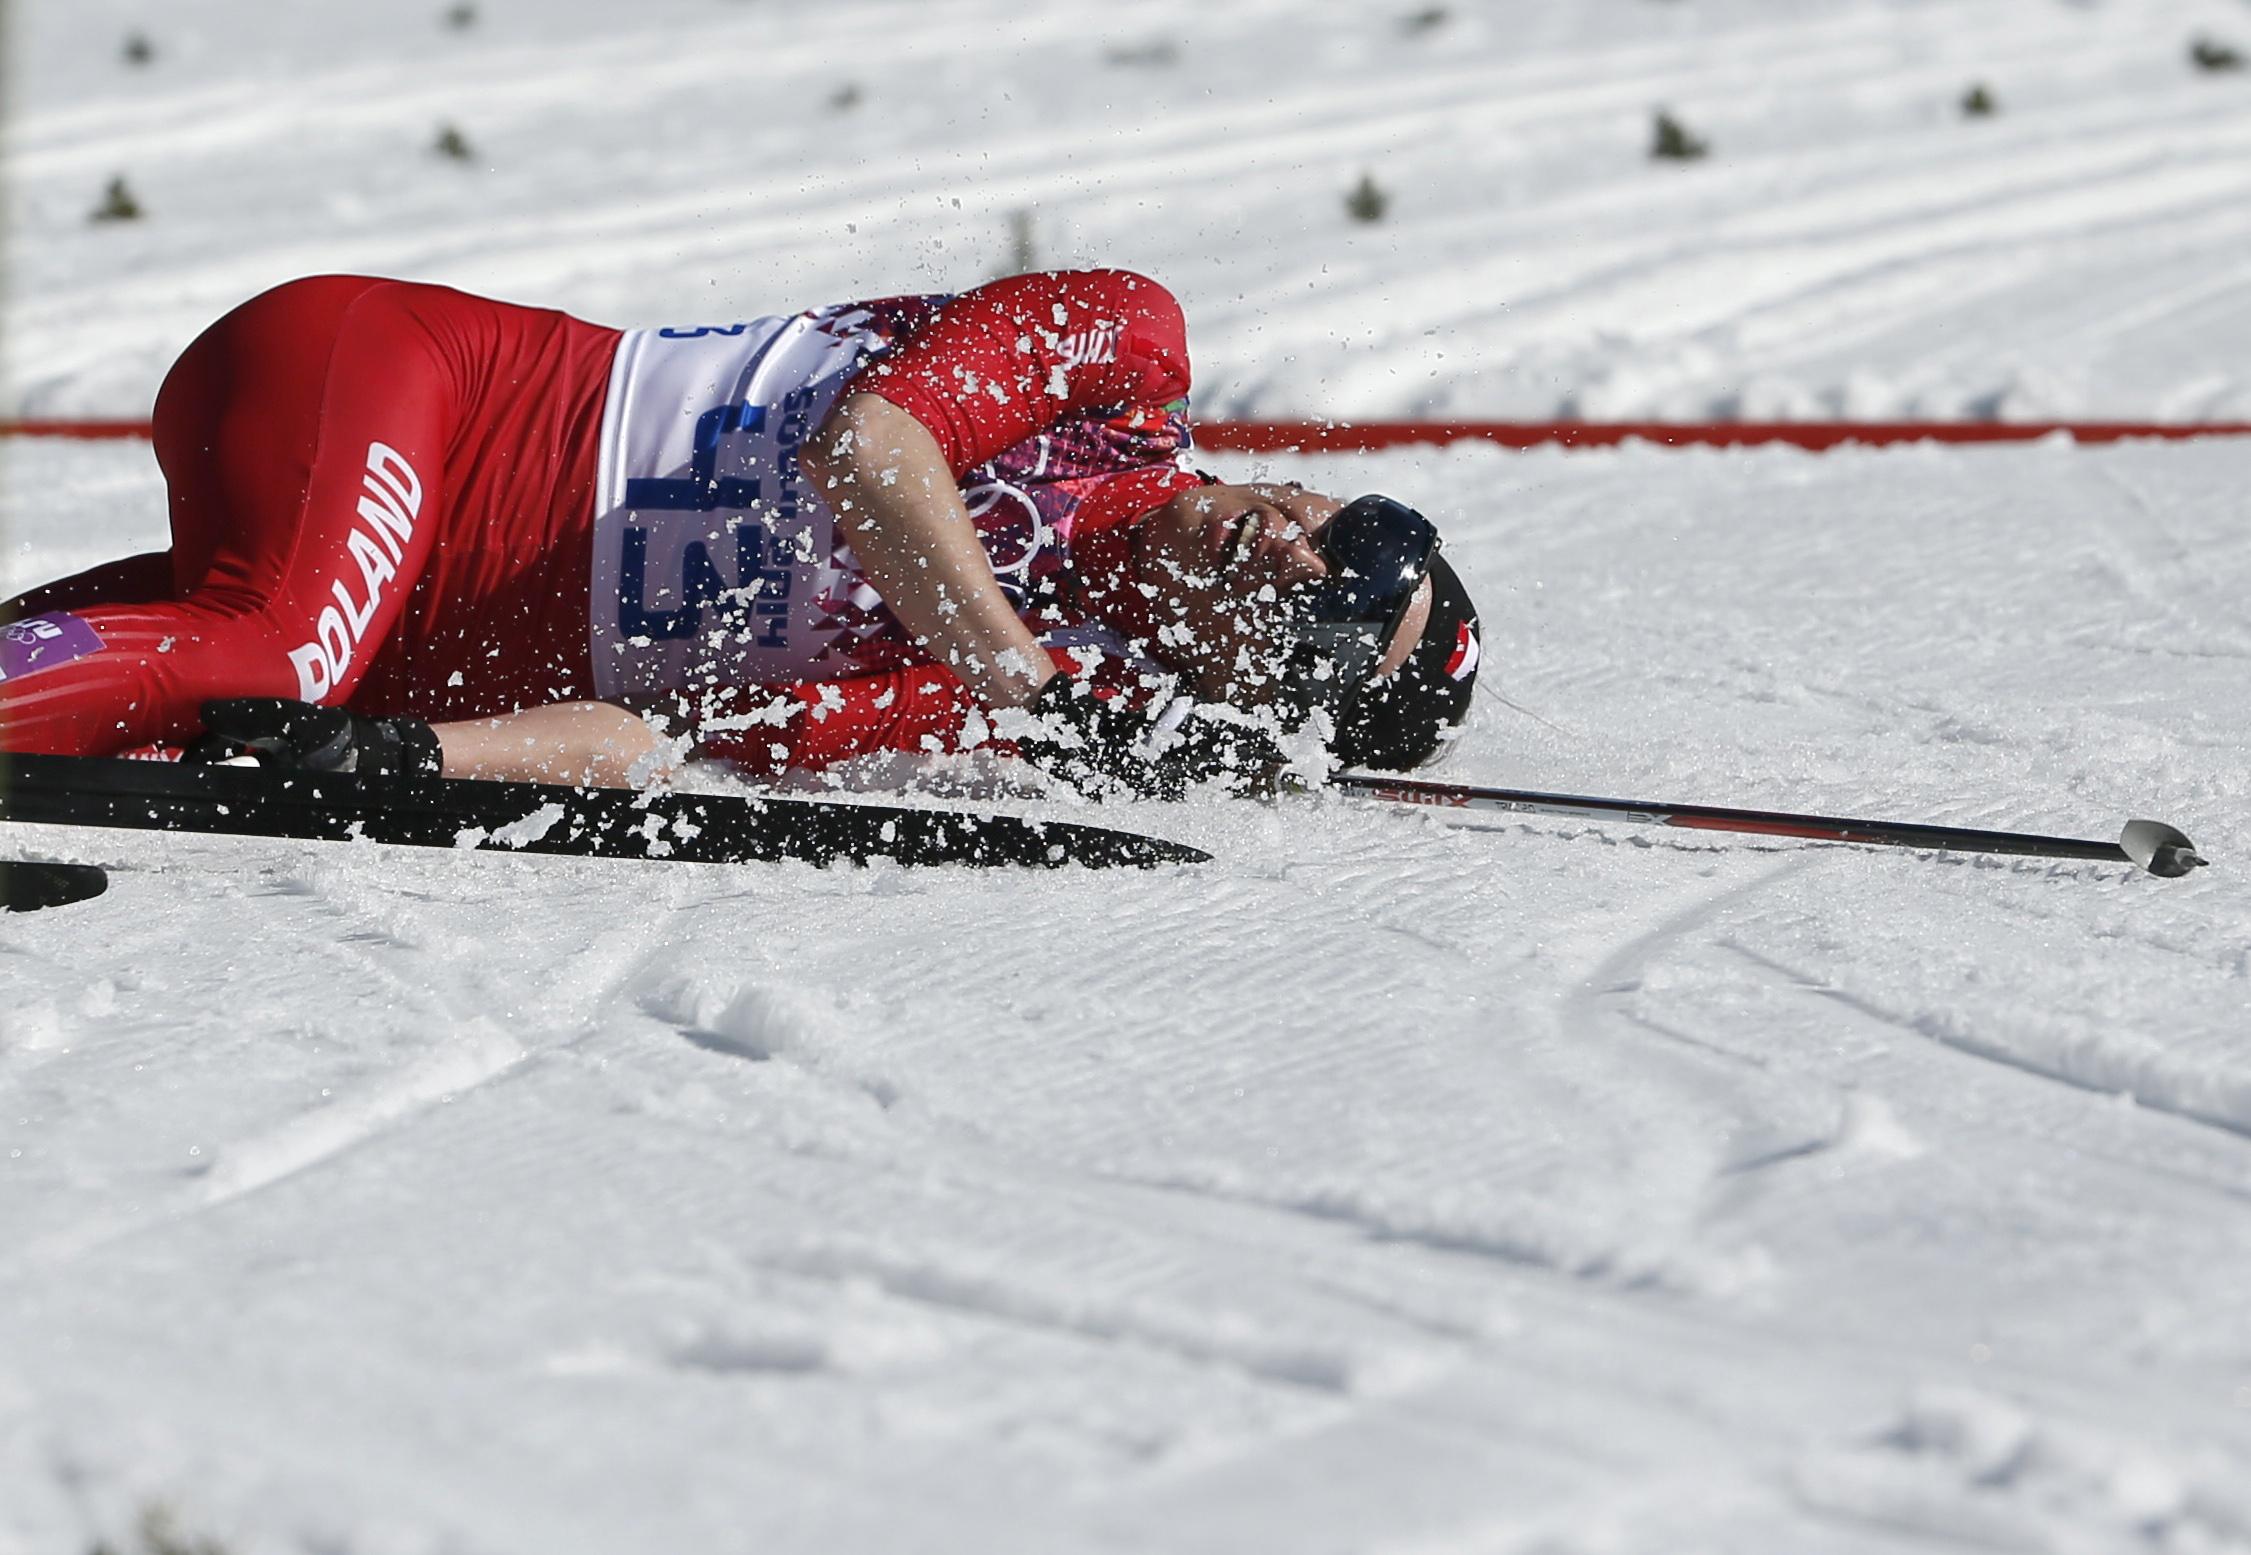 Poland's Justyna Kowalczyk lies on the ground after crossing the finish line in the women's cross-country 10km classic event.